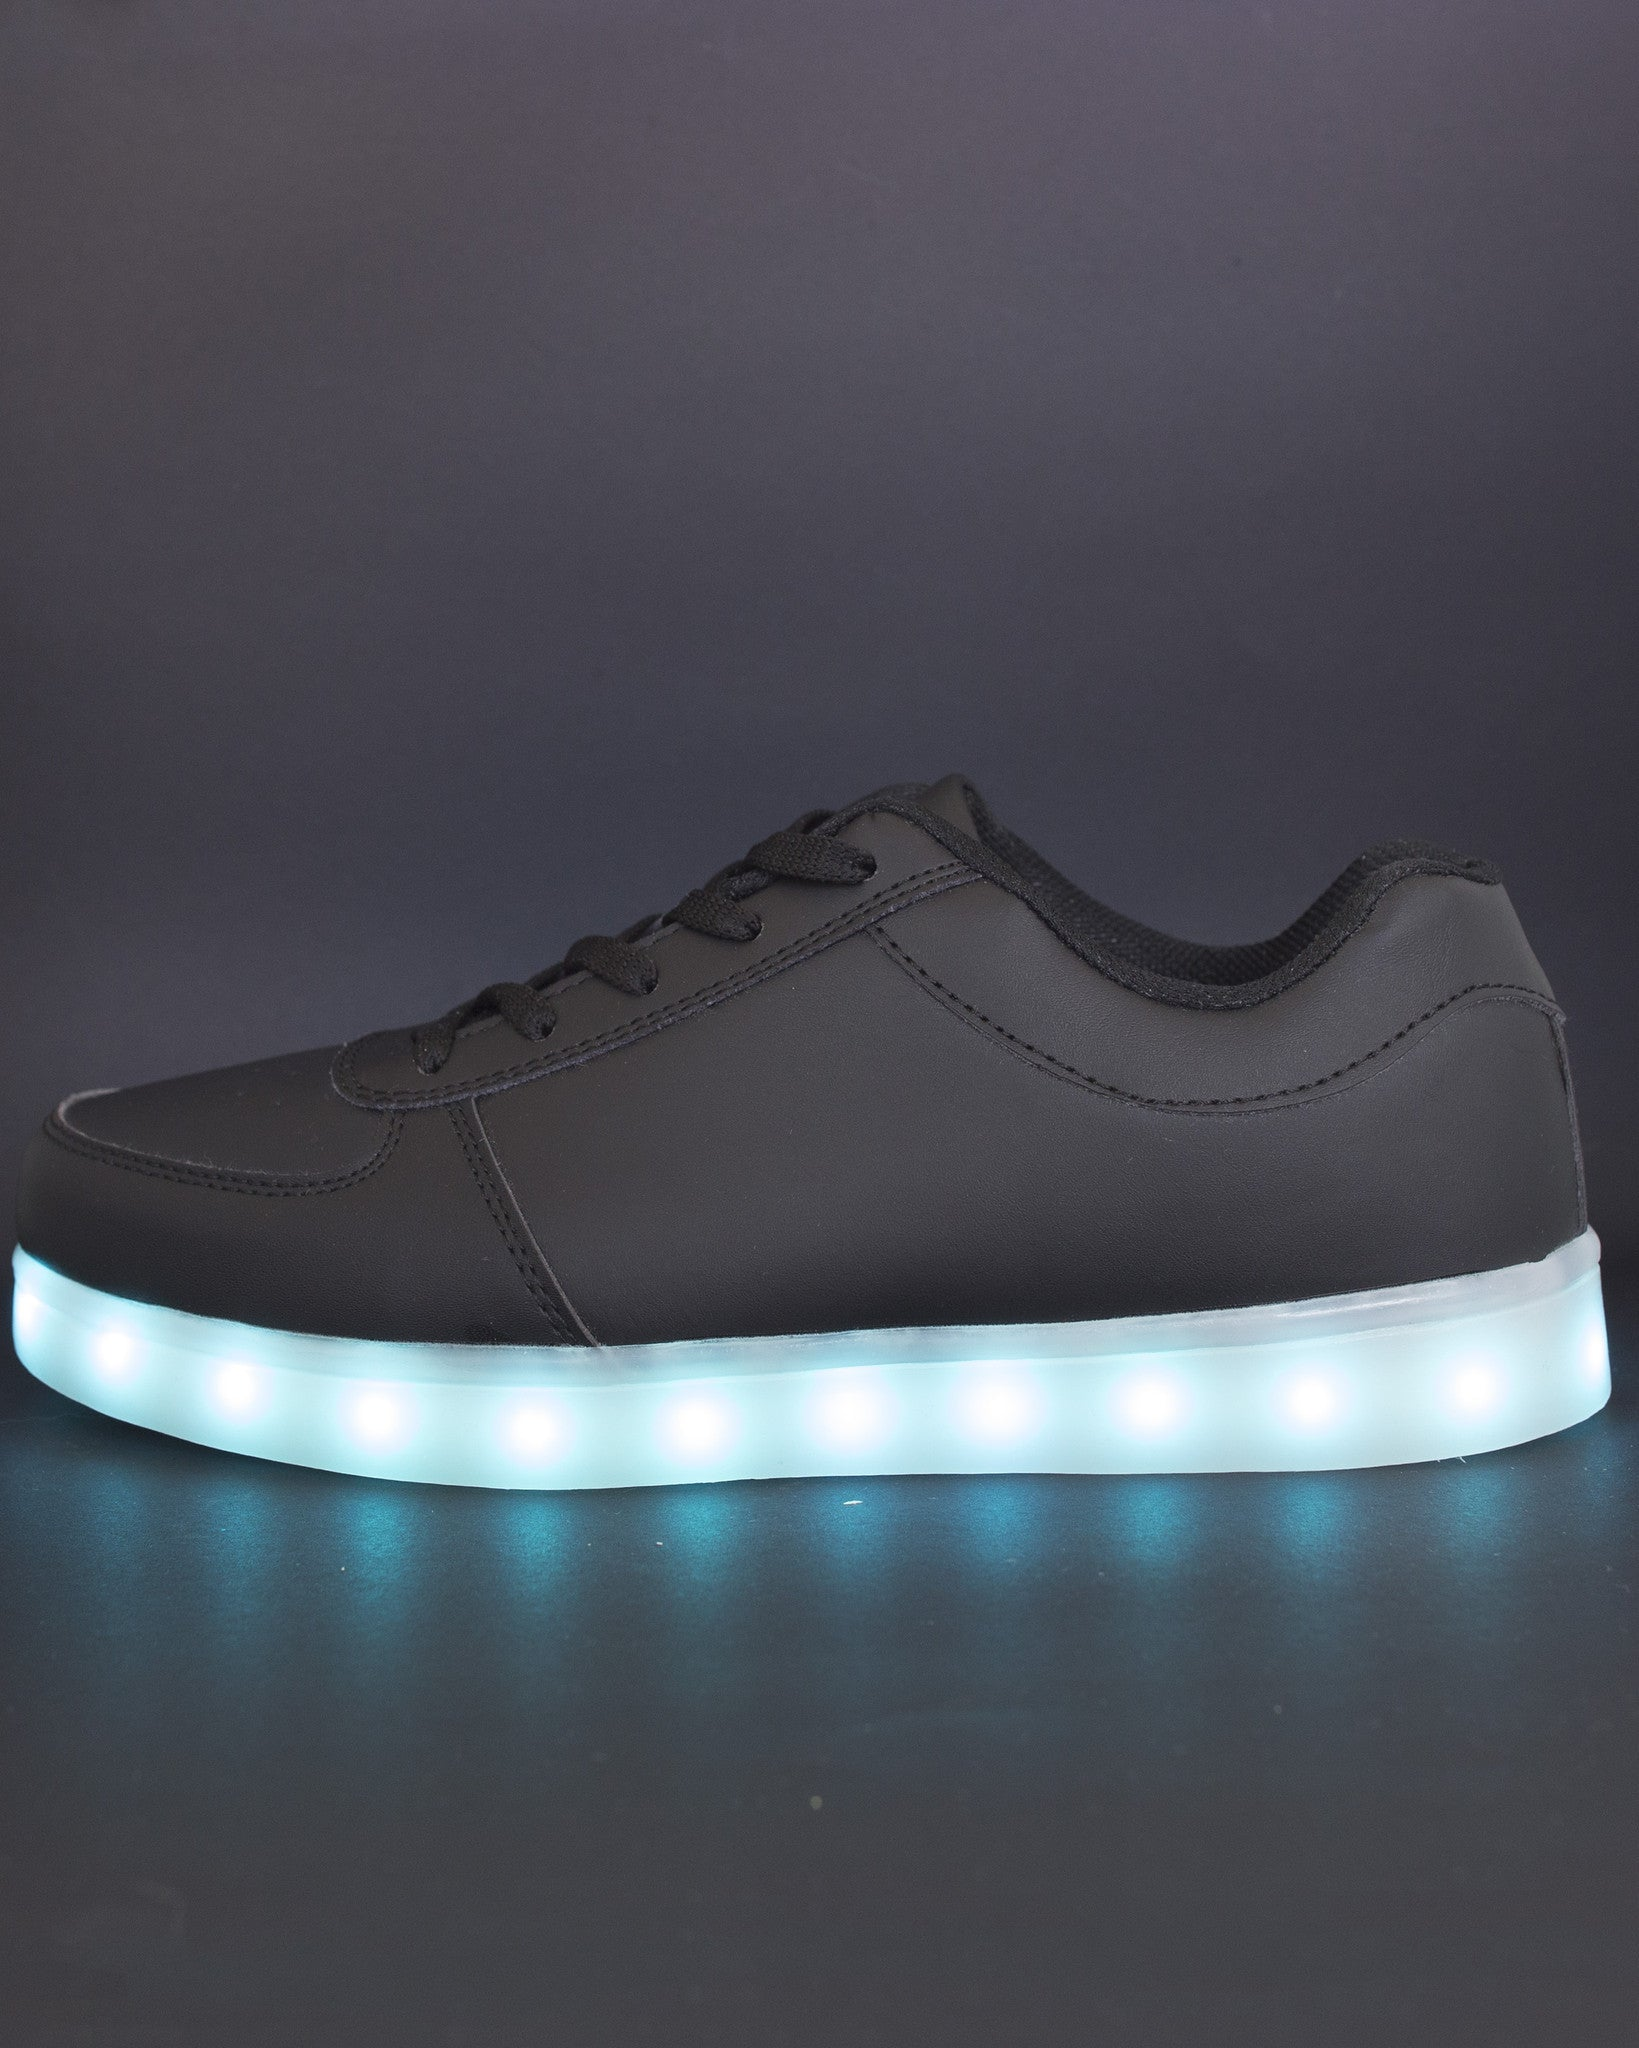 Light Up Shoes - All Black - Electric Styles | World's Number 1 Light Up Shoe Store - {product_type}} -  - 4